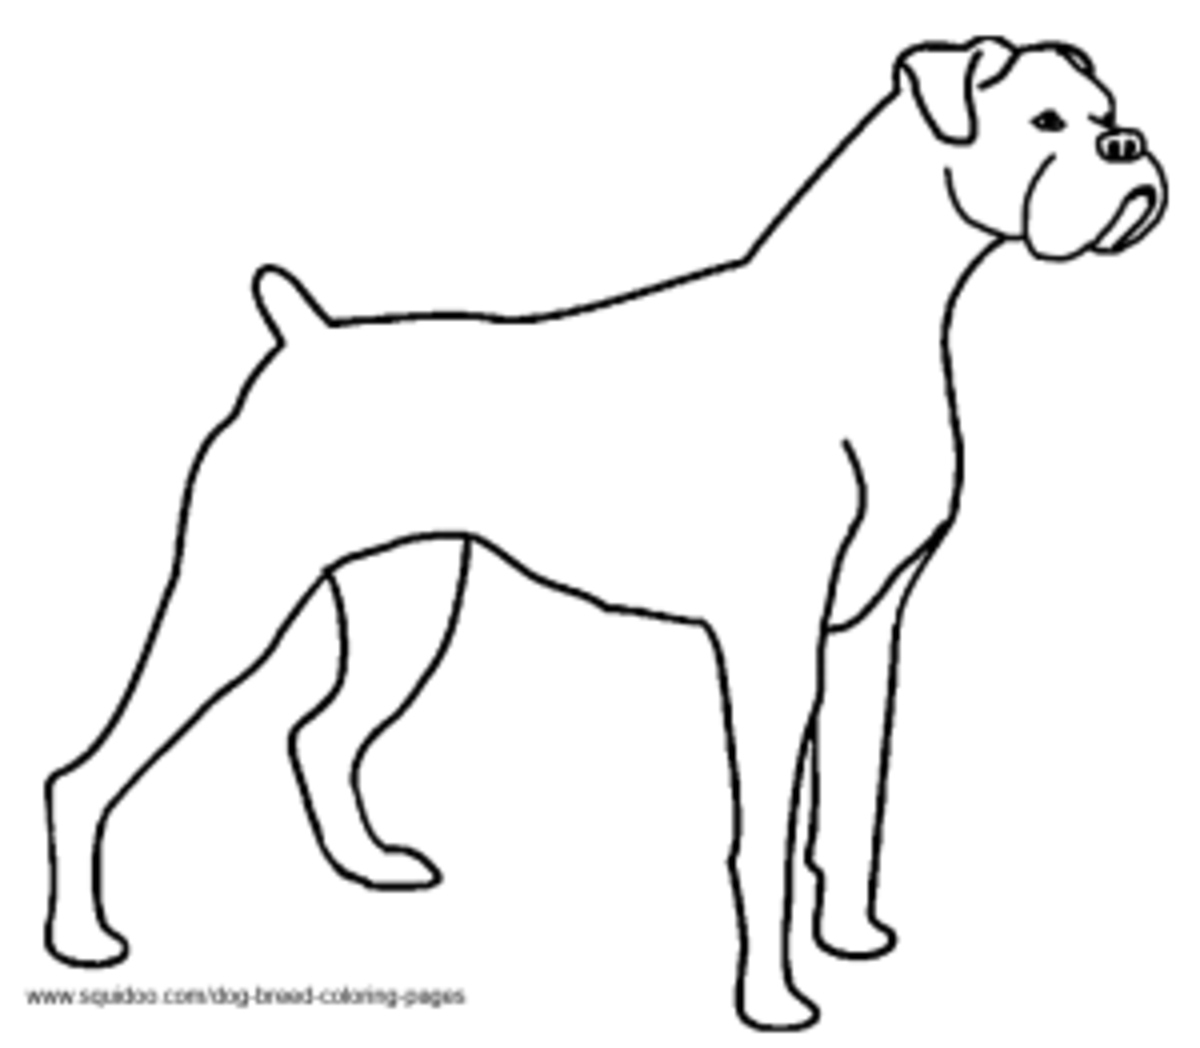 Dog breed coloring pages hubpages for Printable boxer dog coloring pages